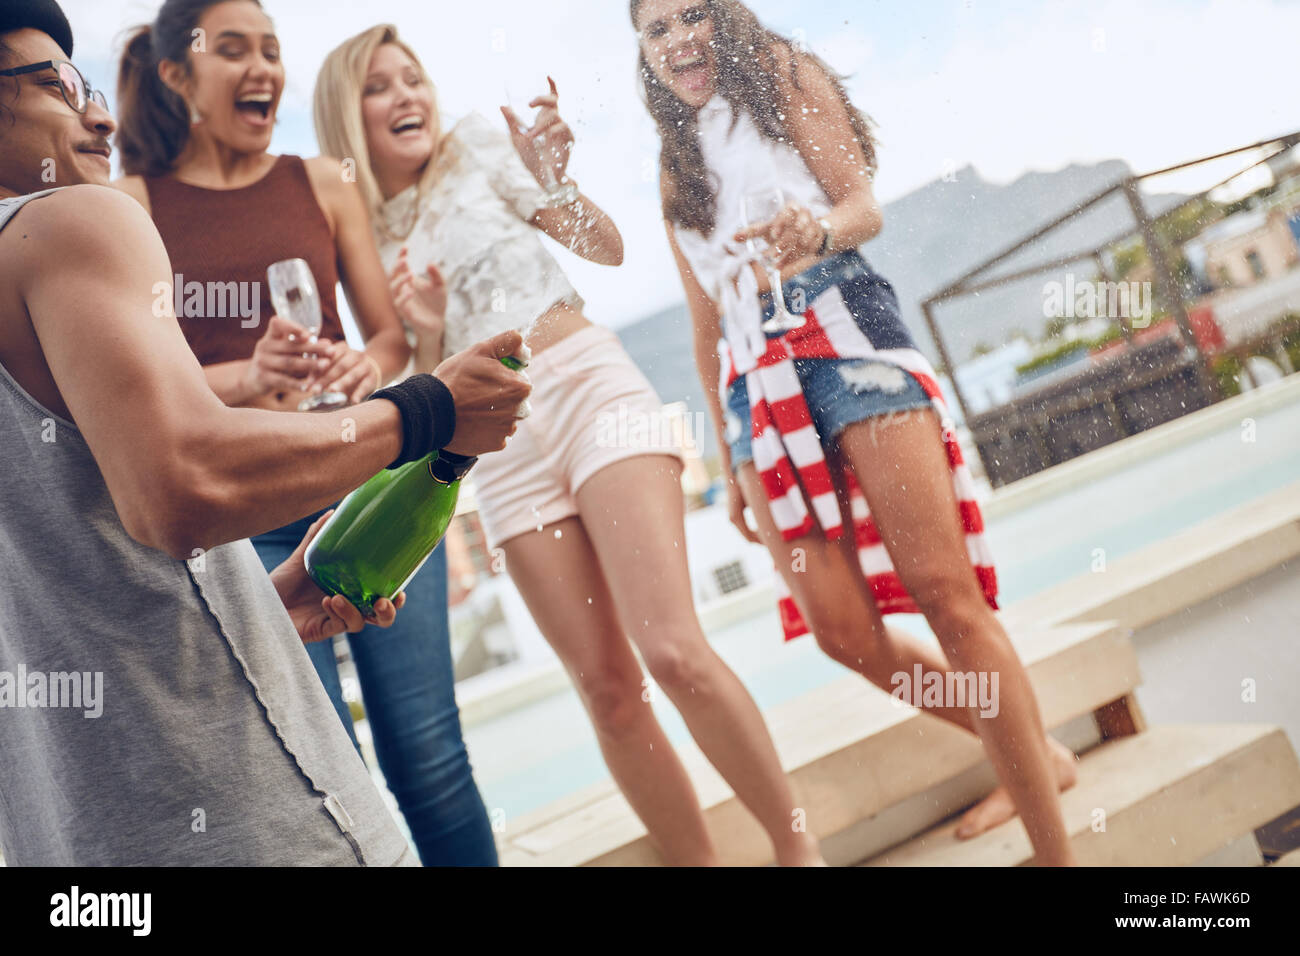 Party image of young man opening a bottle of champagne. Women standing by a swimming pool holding glasses and laughing. - Stock Image